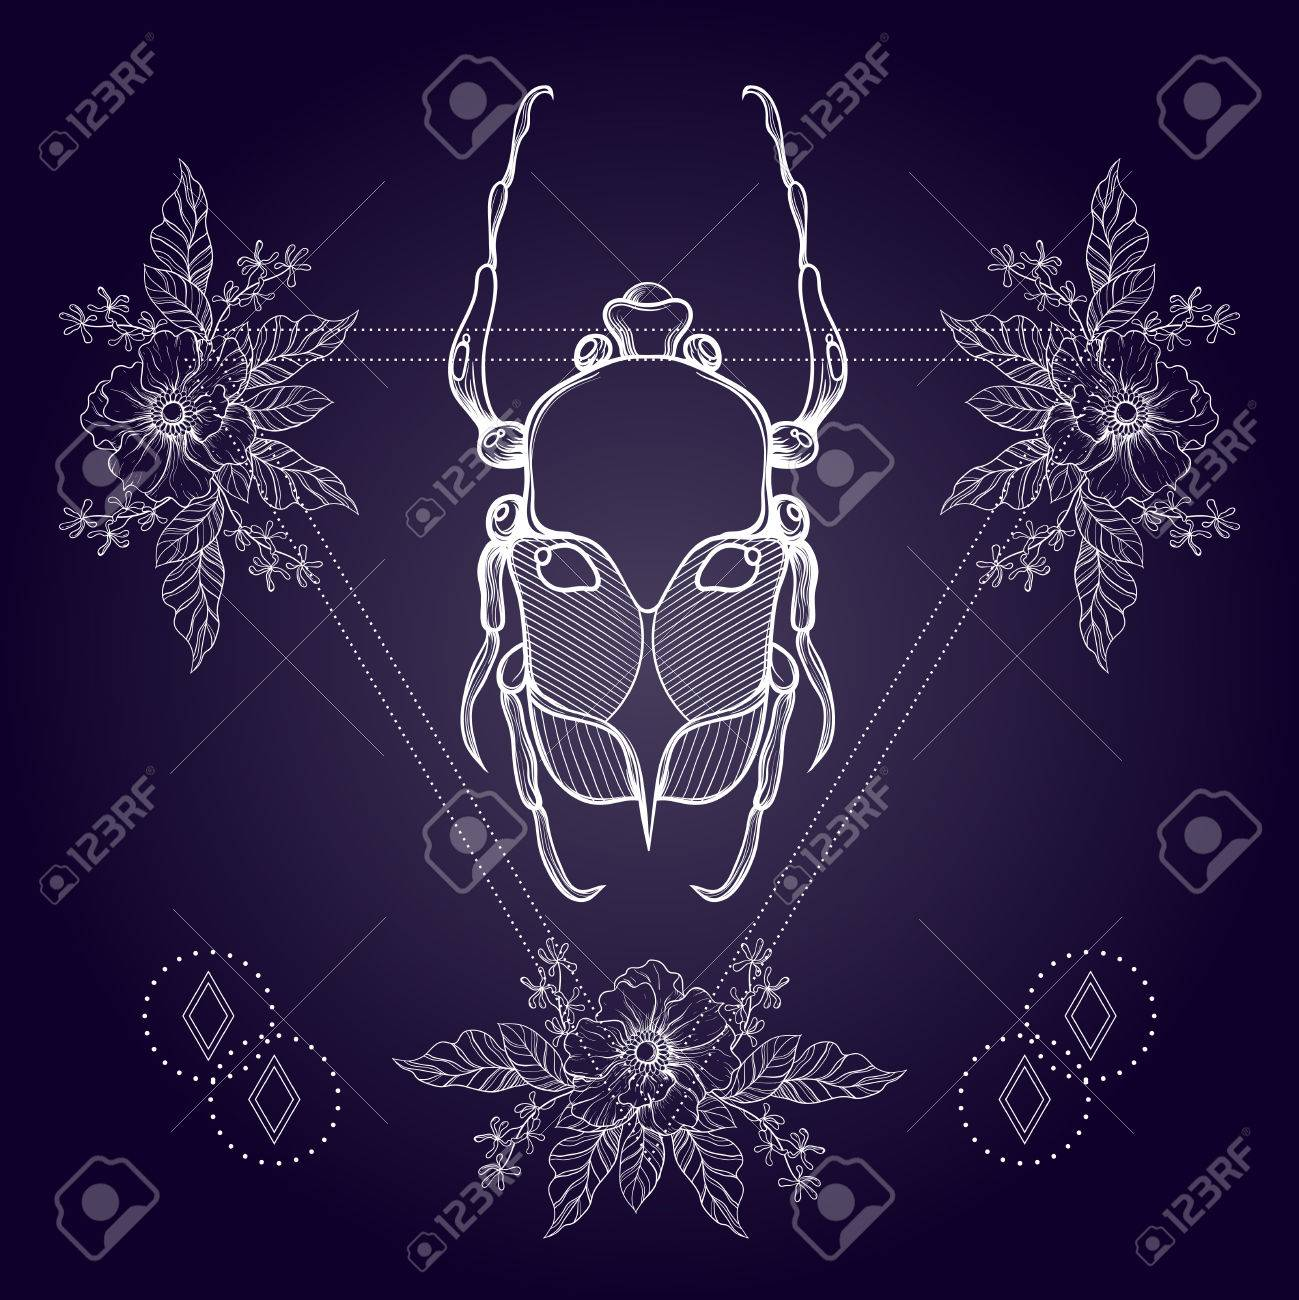 57f48585ff6ba Line art drawing. Boho tattoo. Blackwork beetle, May bug in hipster  triangle frame with flowers. Vector